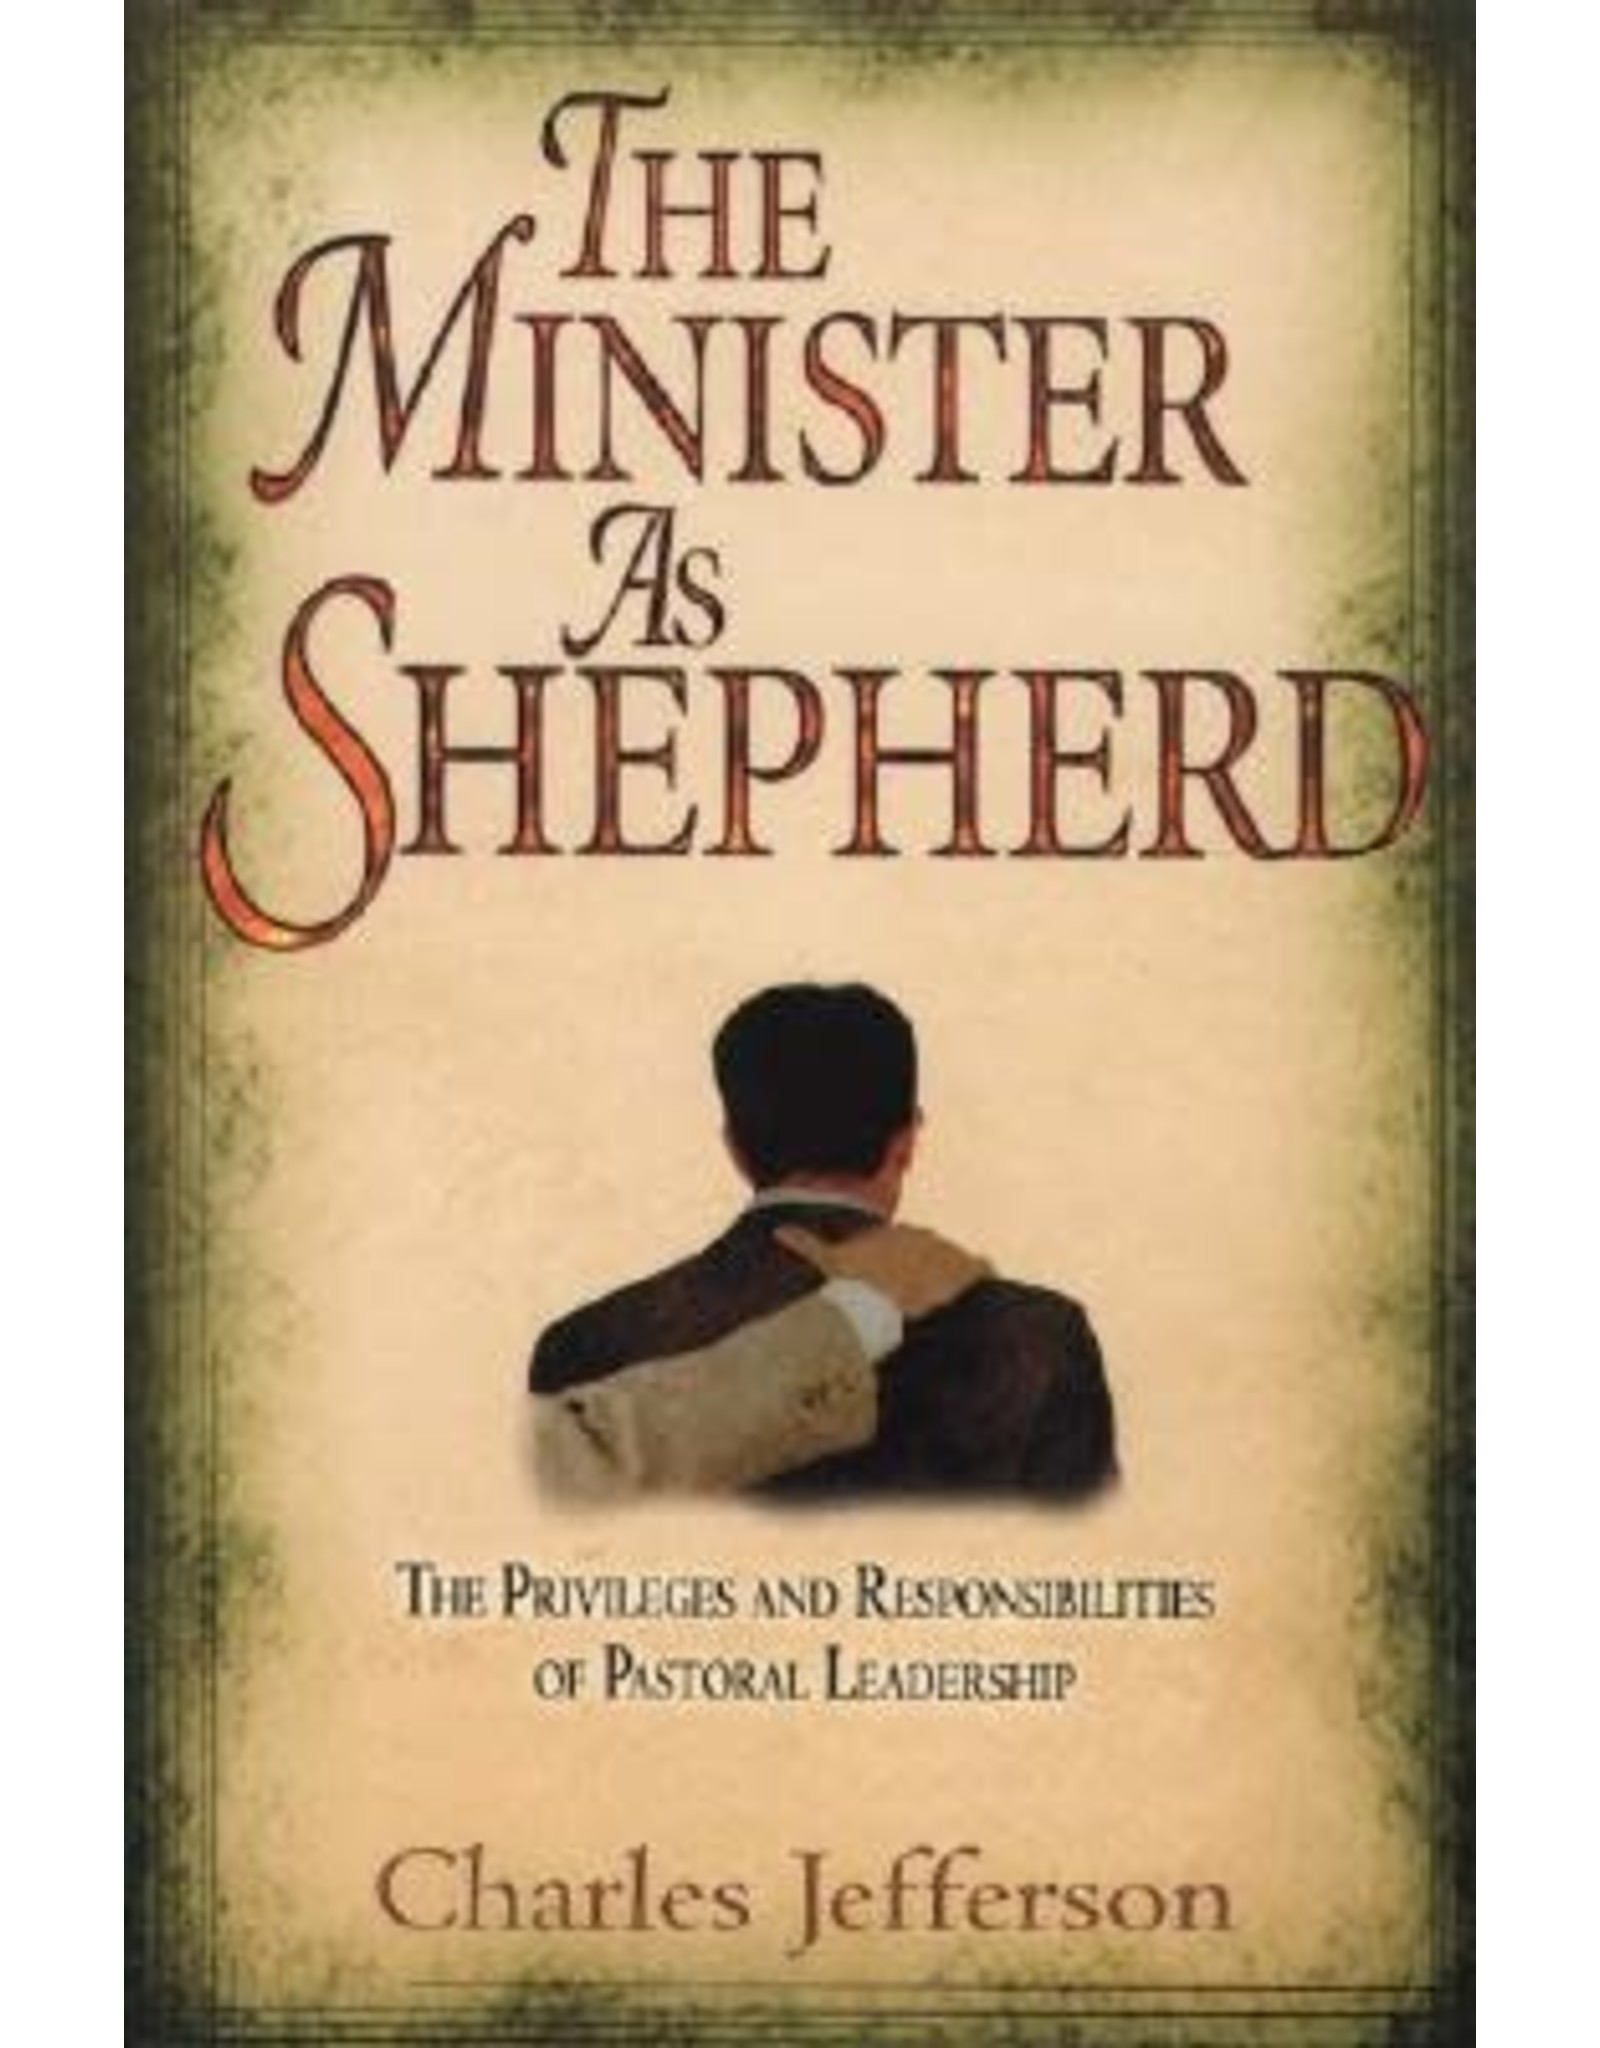 Jefferson The Minister As Shepherd